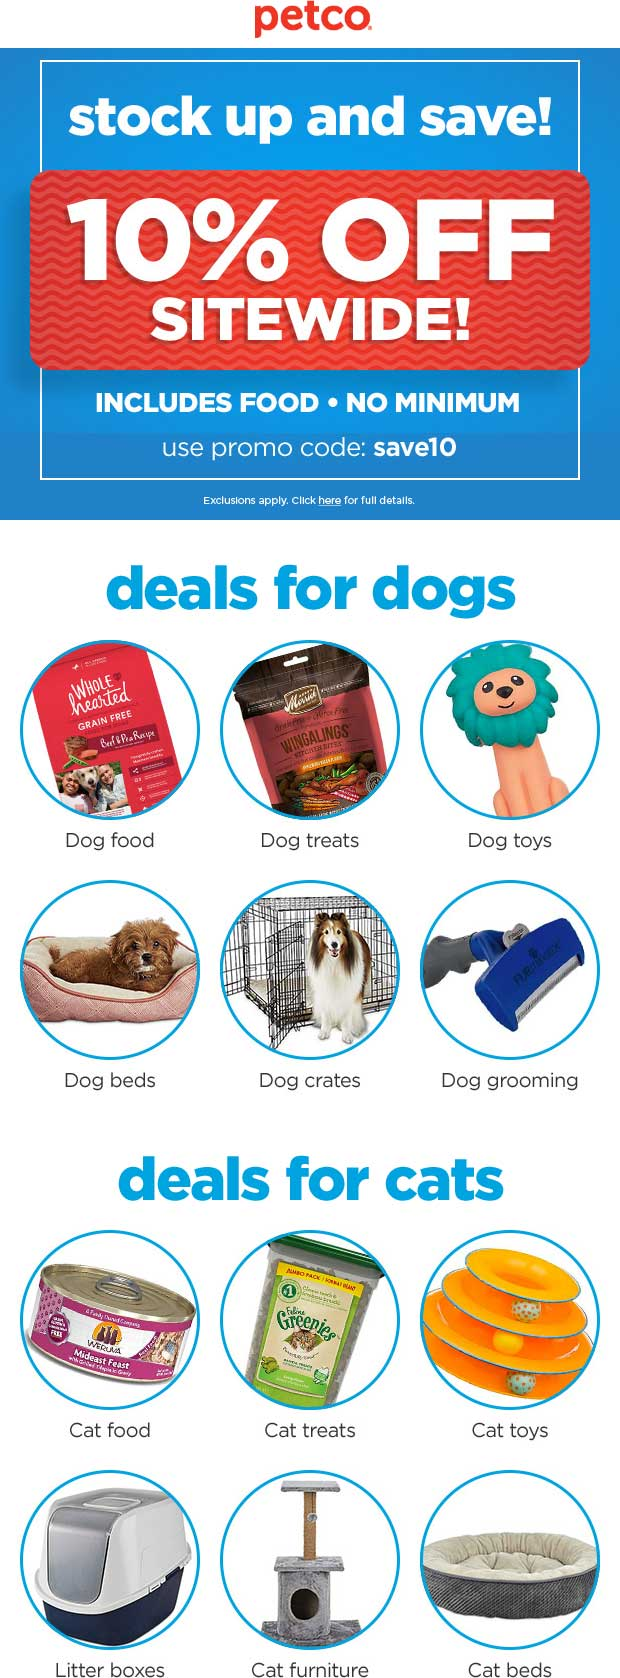 Petco Coupon May 2019 10% off everything online at Petco via promo code save10